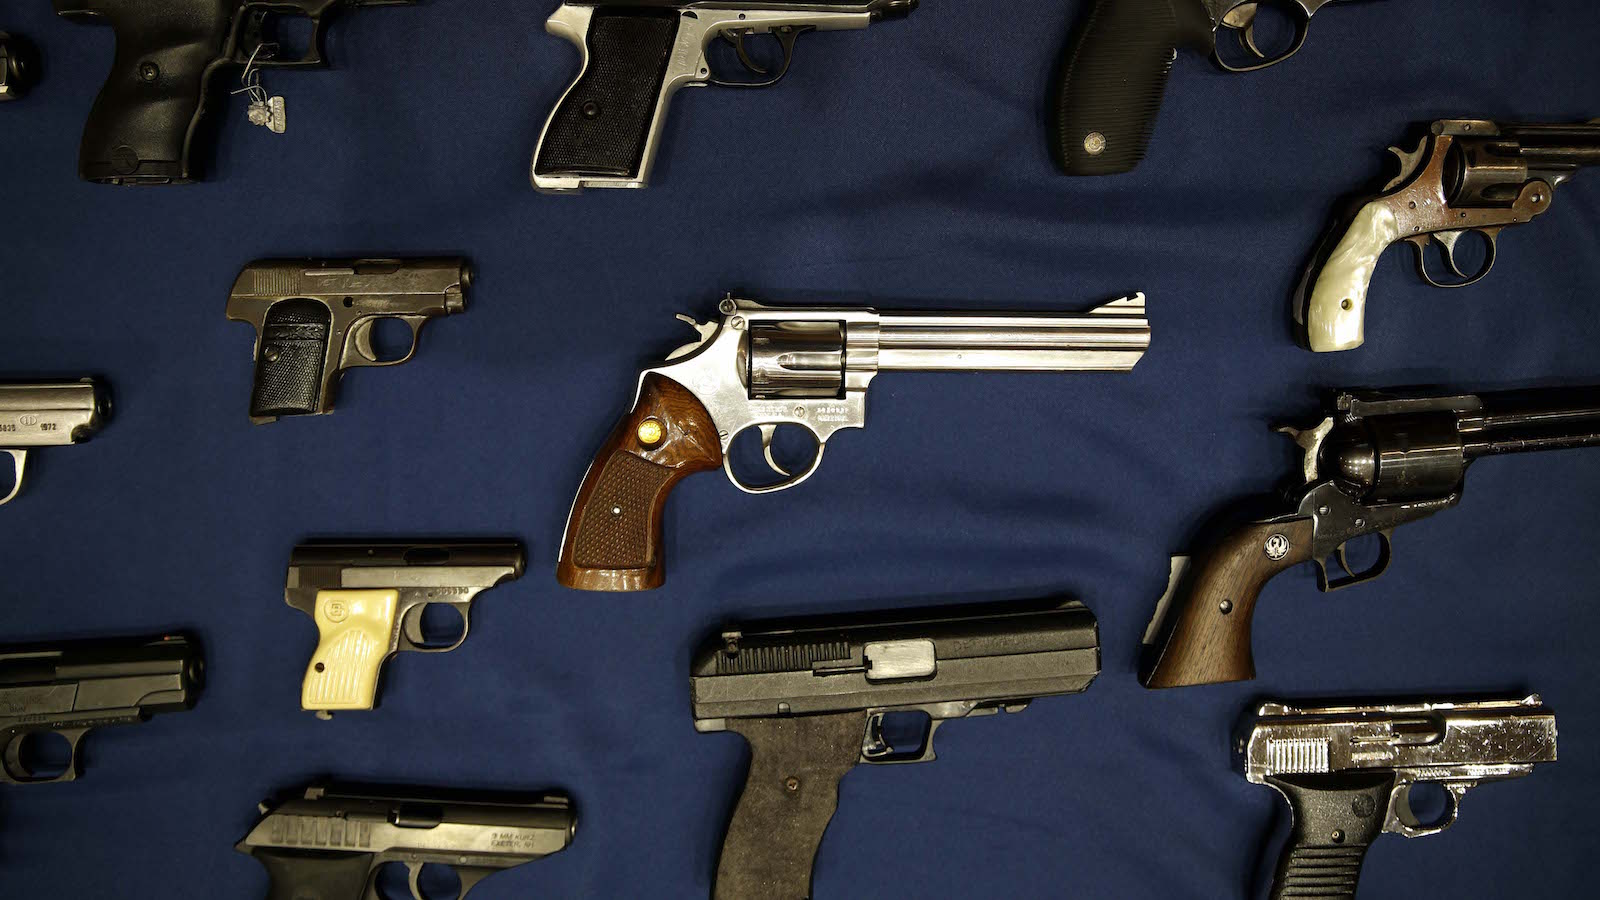 Guns seized by the police are displayed during a news conference in New York, Tuesday, Oct. 27, 2015. Officials announced charges Tuesday in a gun trafficking case where more than 70 firearms were seized. (AP Photo/Seth Wenig)